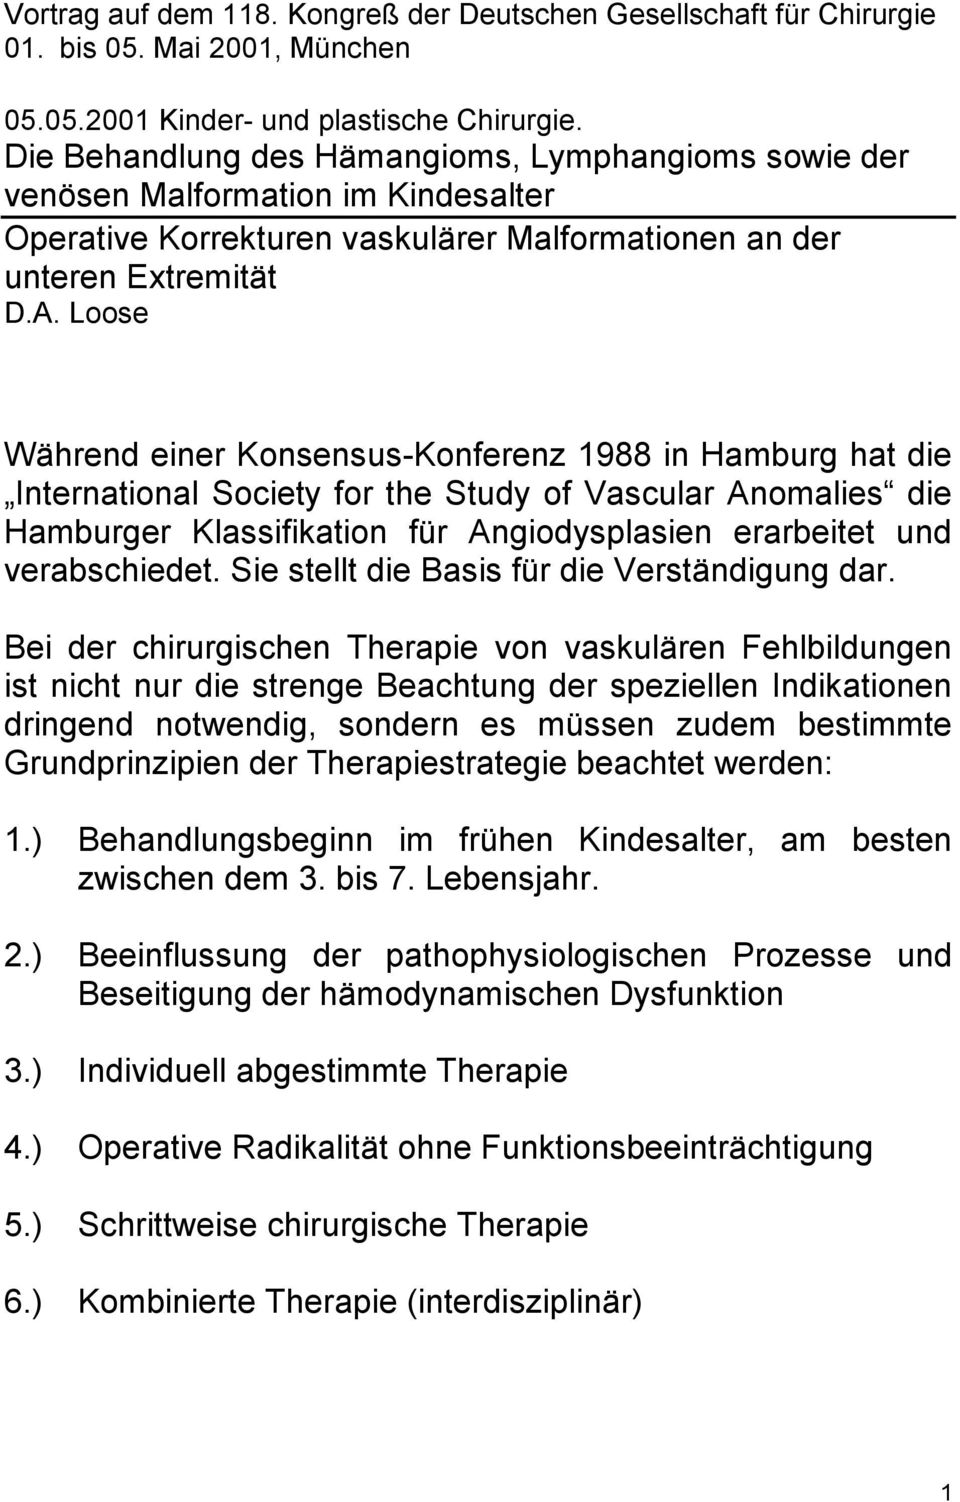 Loose Während einer Konsensus-Konferenz 1988 in Hamburg hat die International Society for the Study of Vascular Anomalies die Hamburger Klassifikation für Angiodysplasien erarbeitet und verabschiedet.